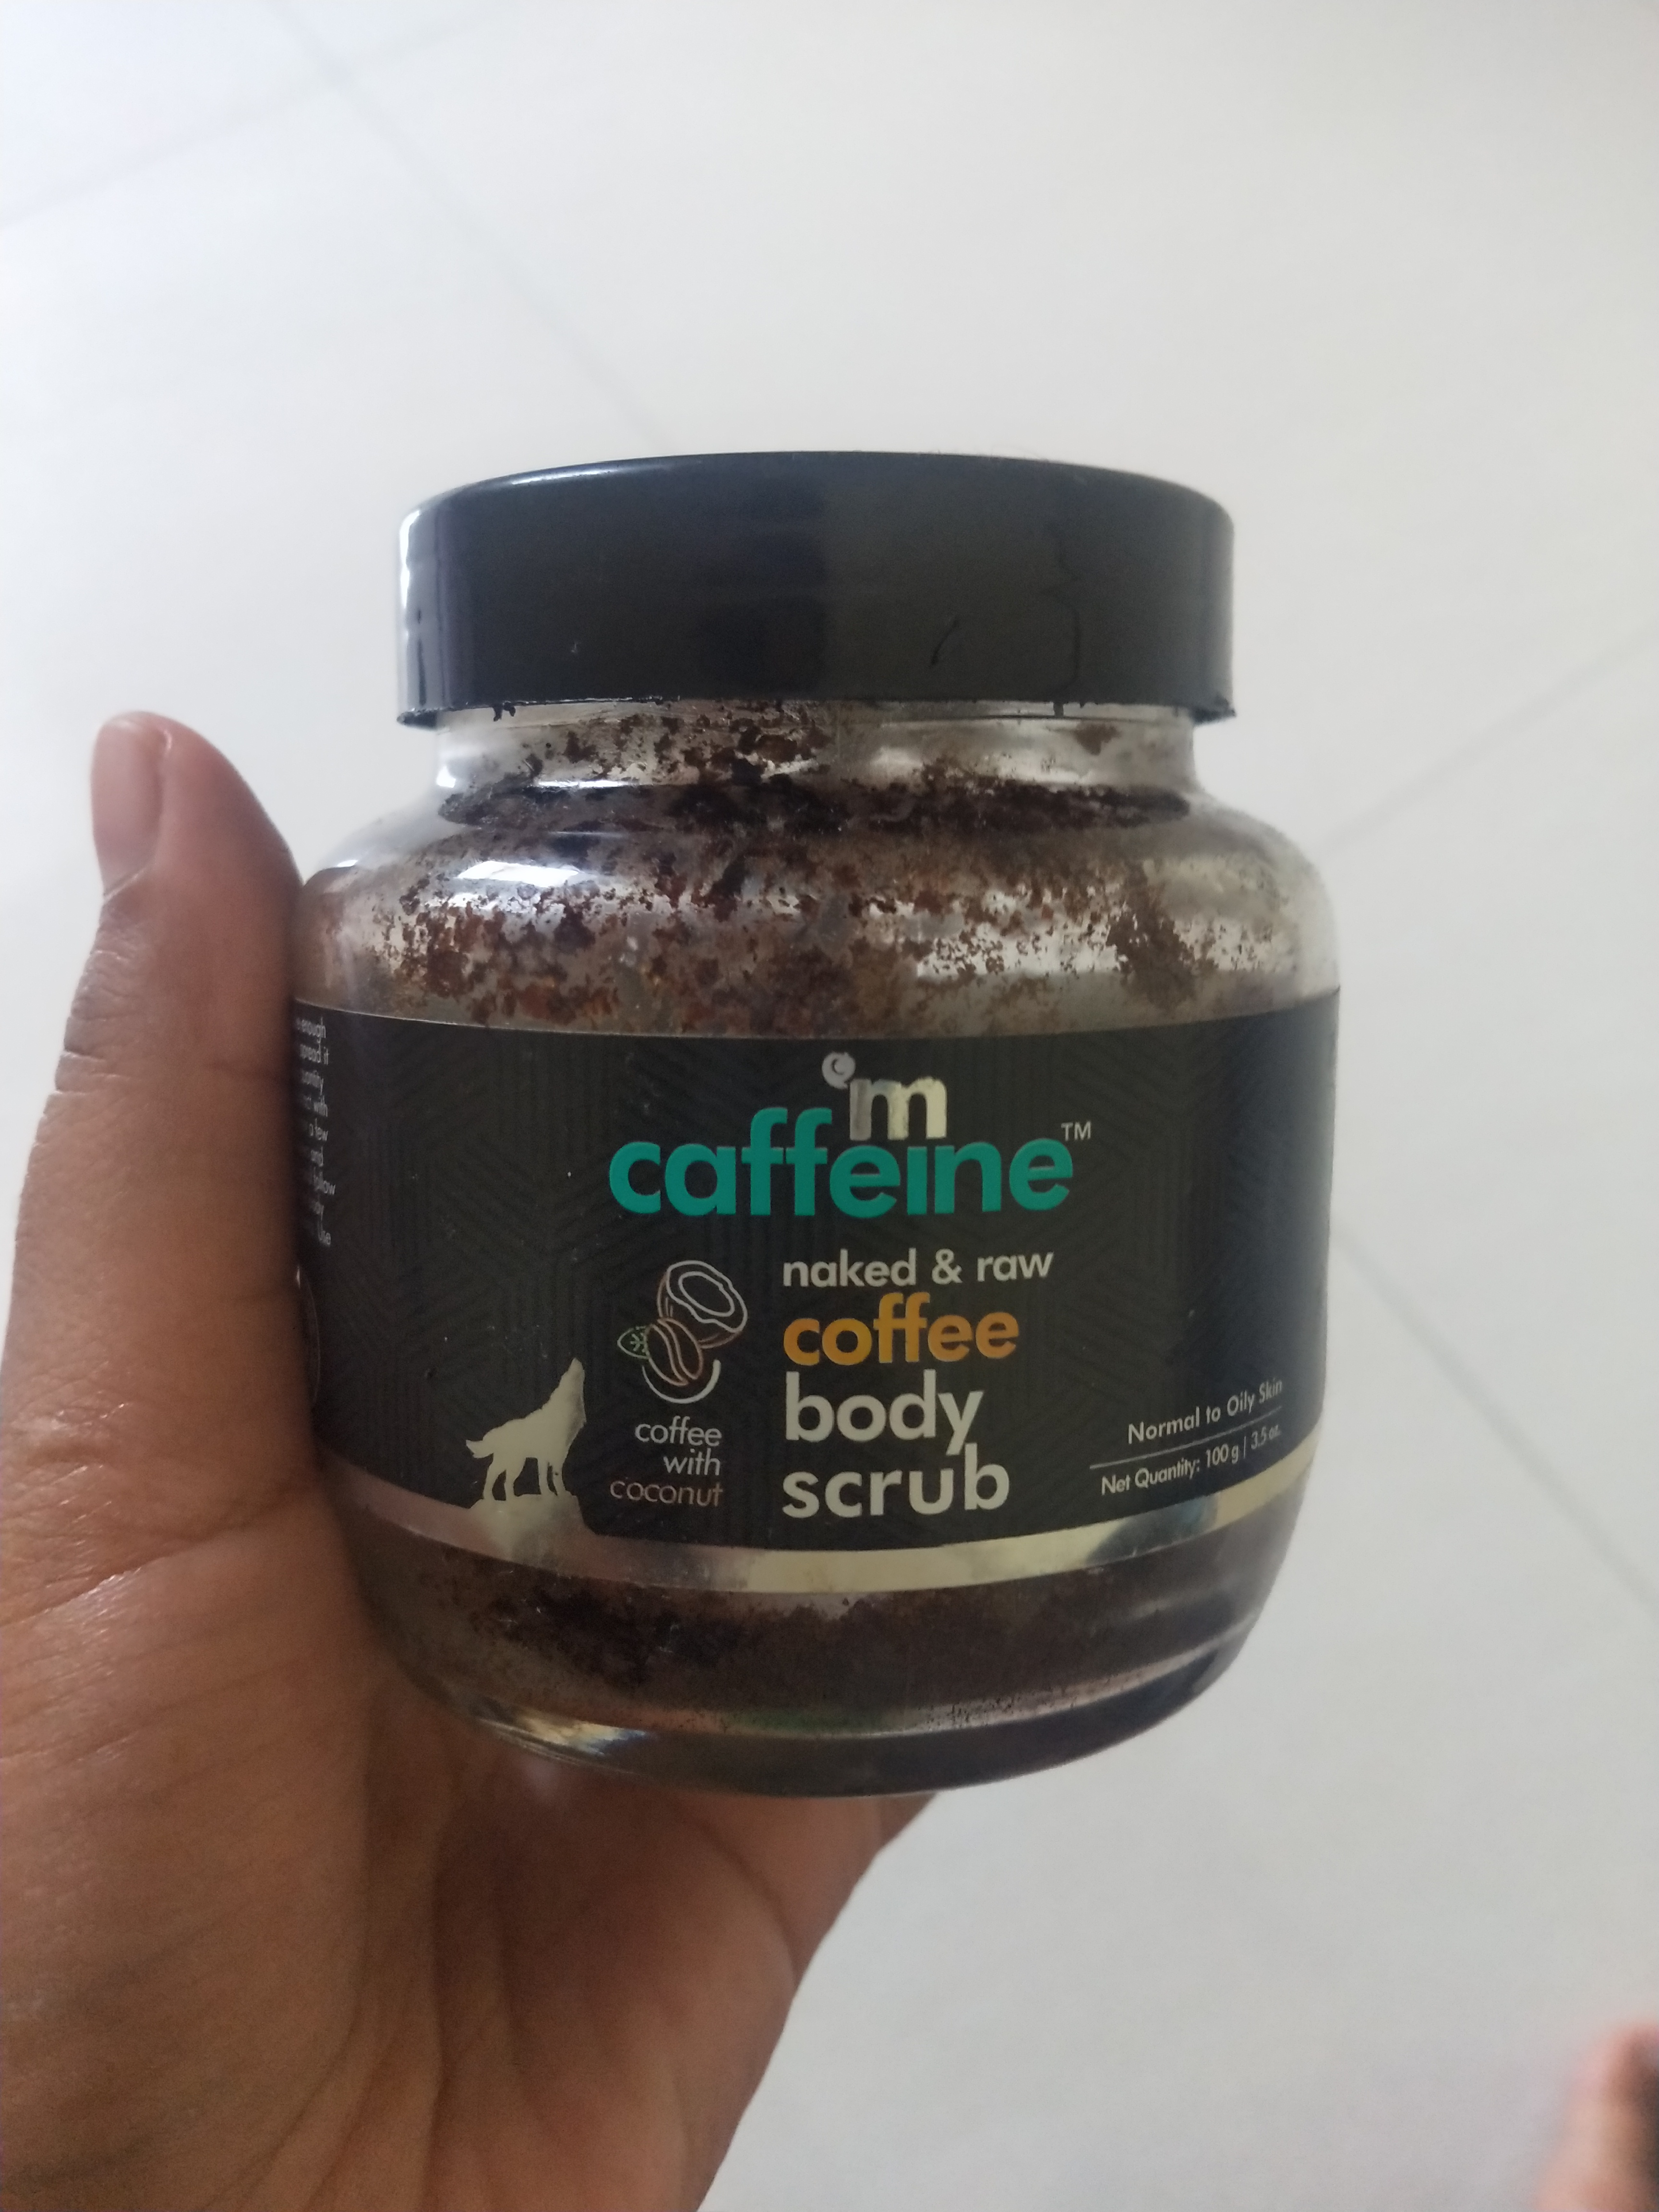 MCaffeine Naked & Raw Coffee Body Scrub-Amazing body exfoliator to get rid of tanning and dead skin-By miss_hungry_soul-3